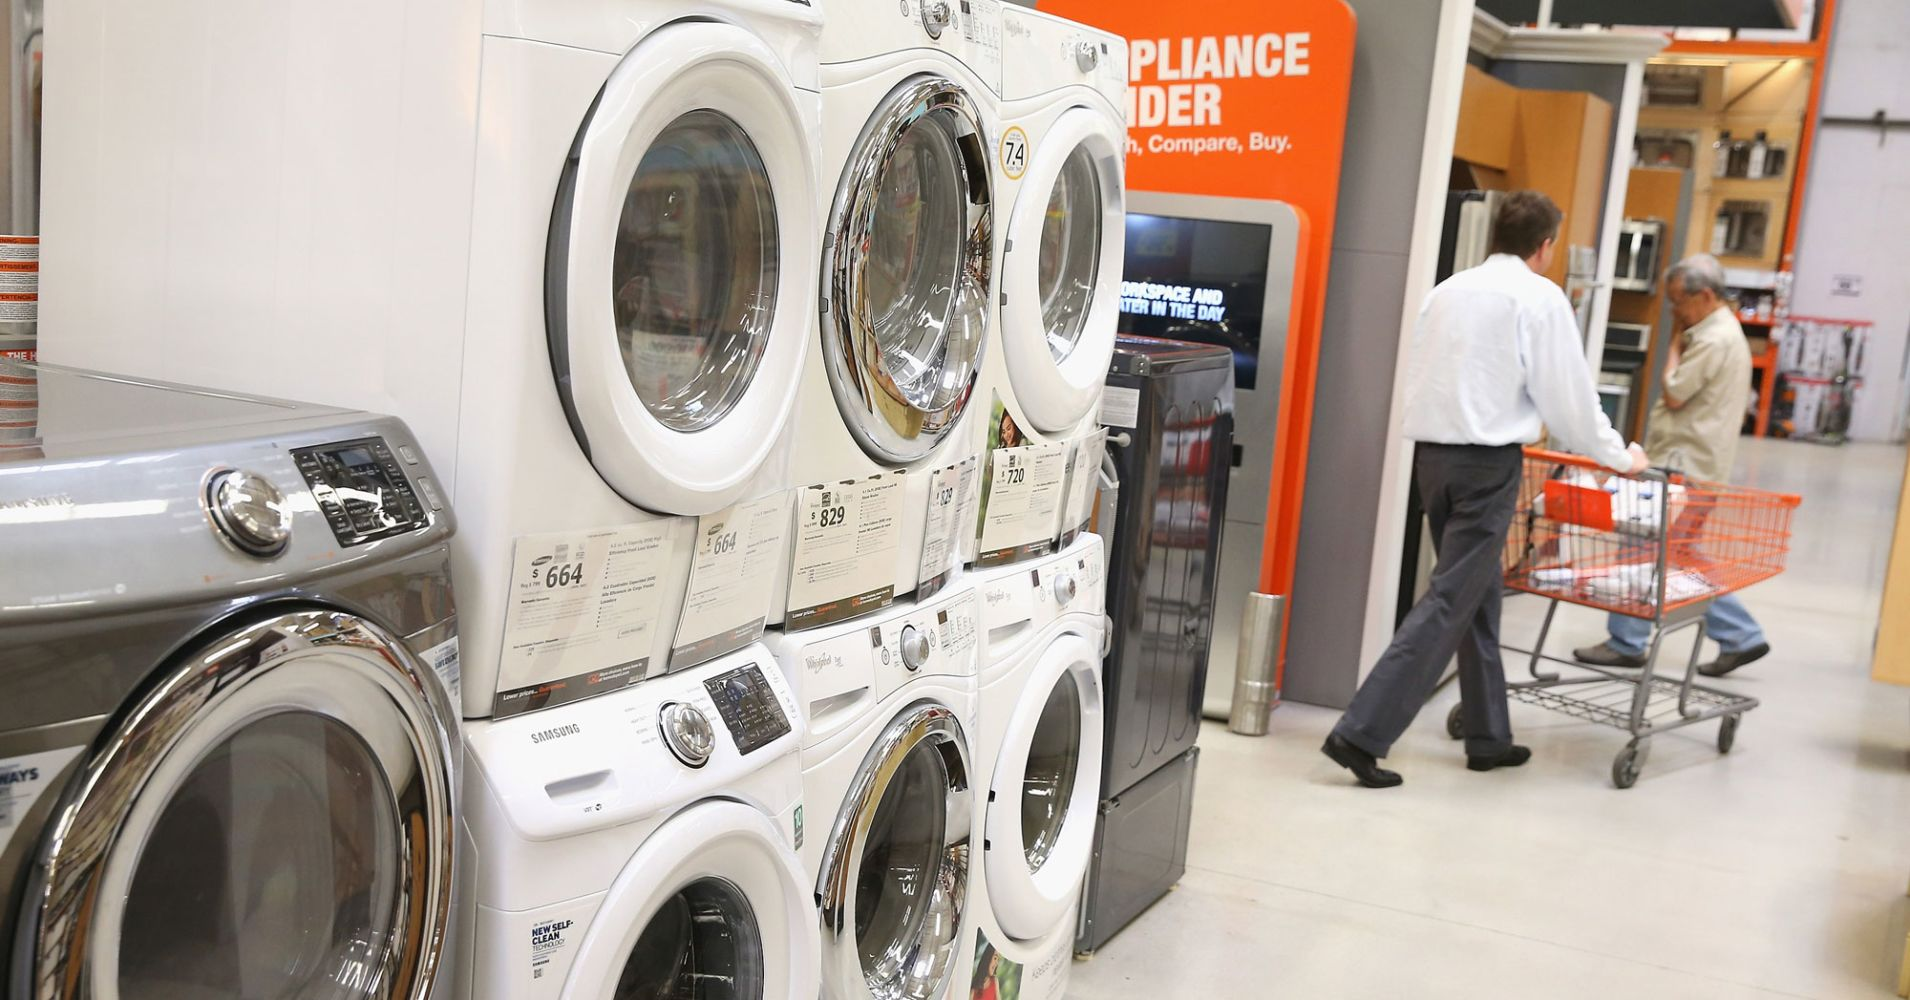 US durable goods orders edged up a modest 0.8% in Sept